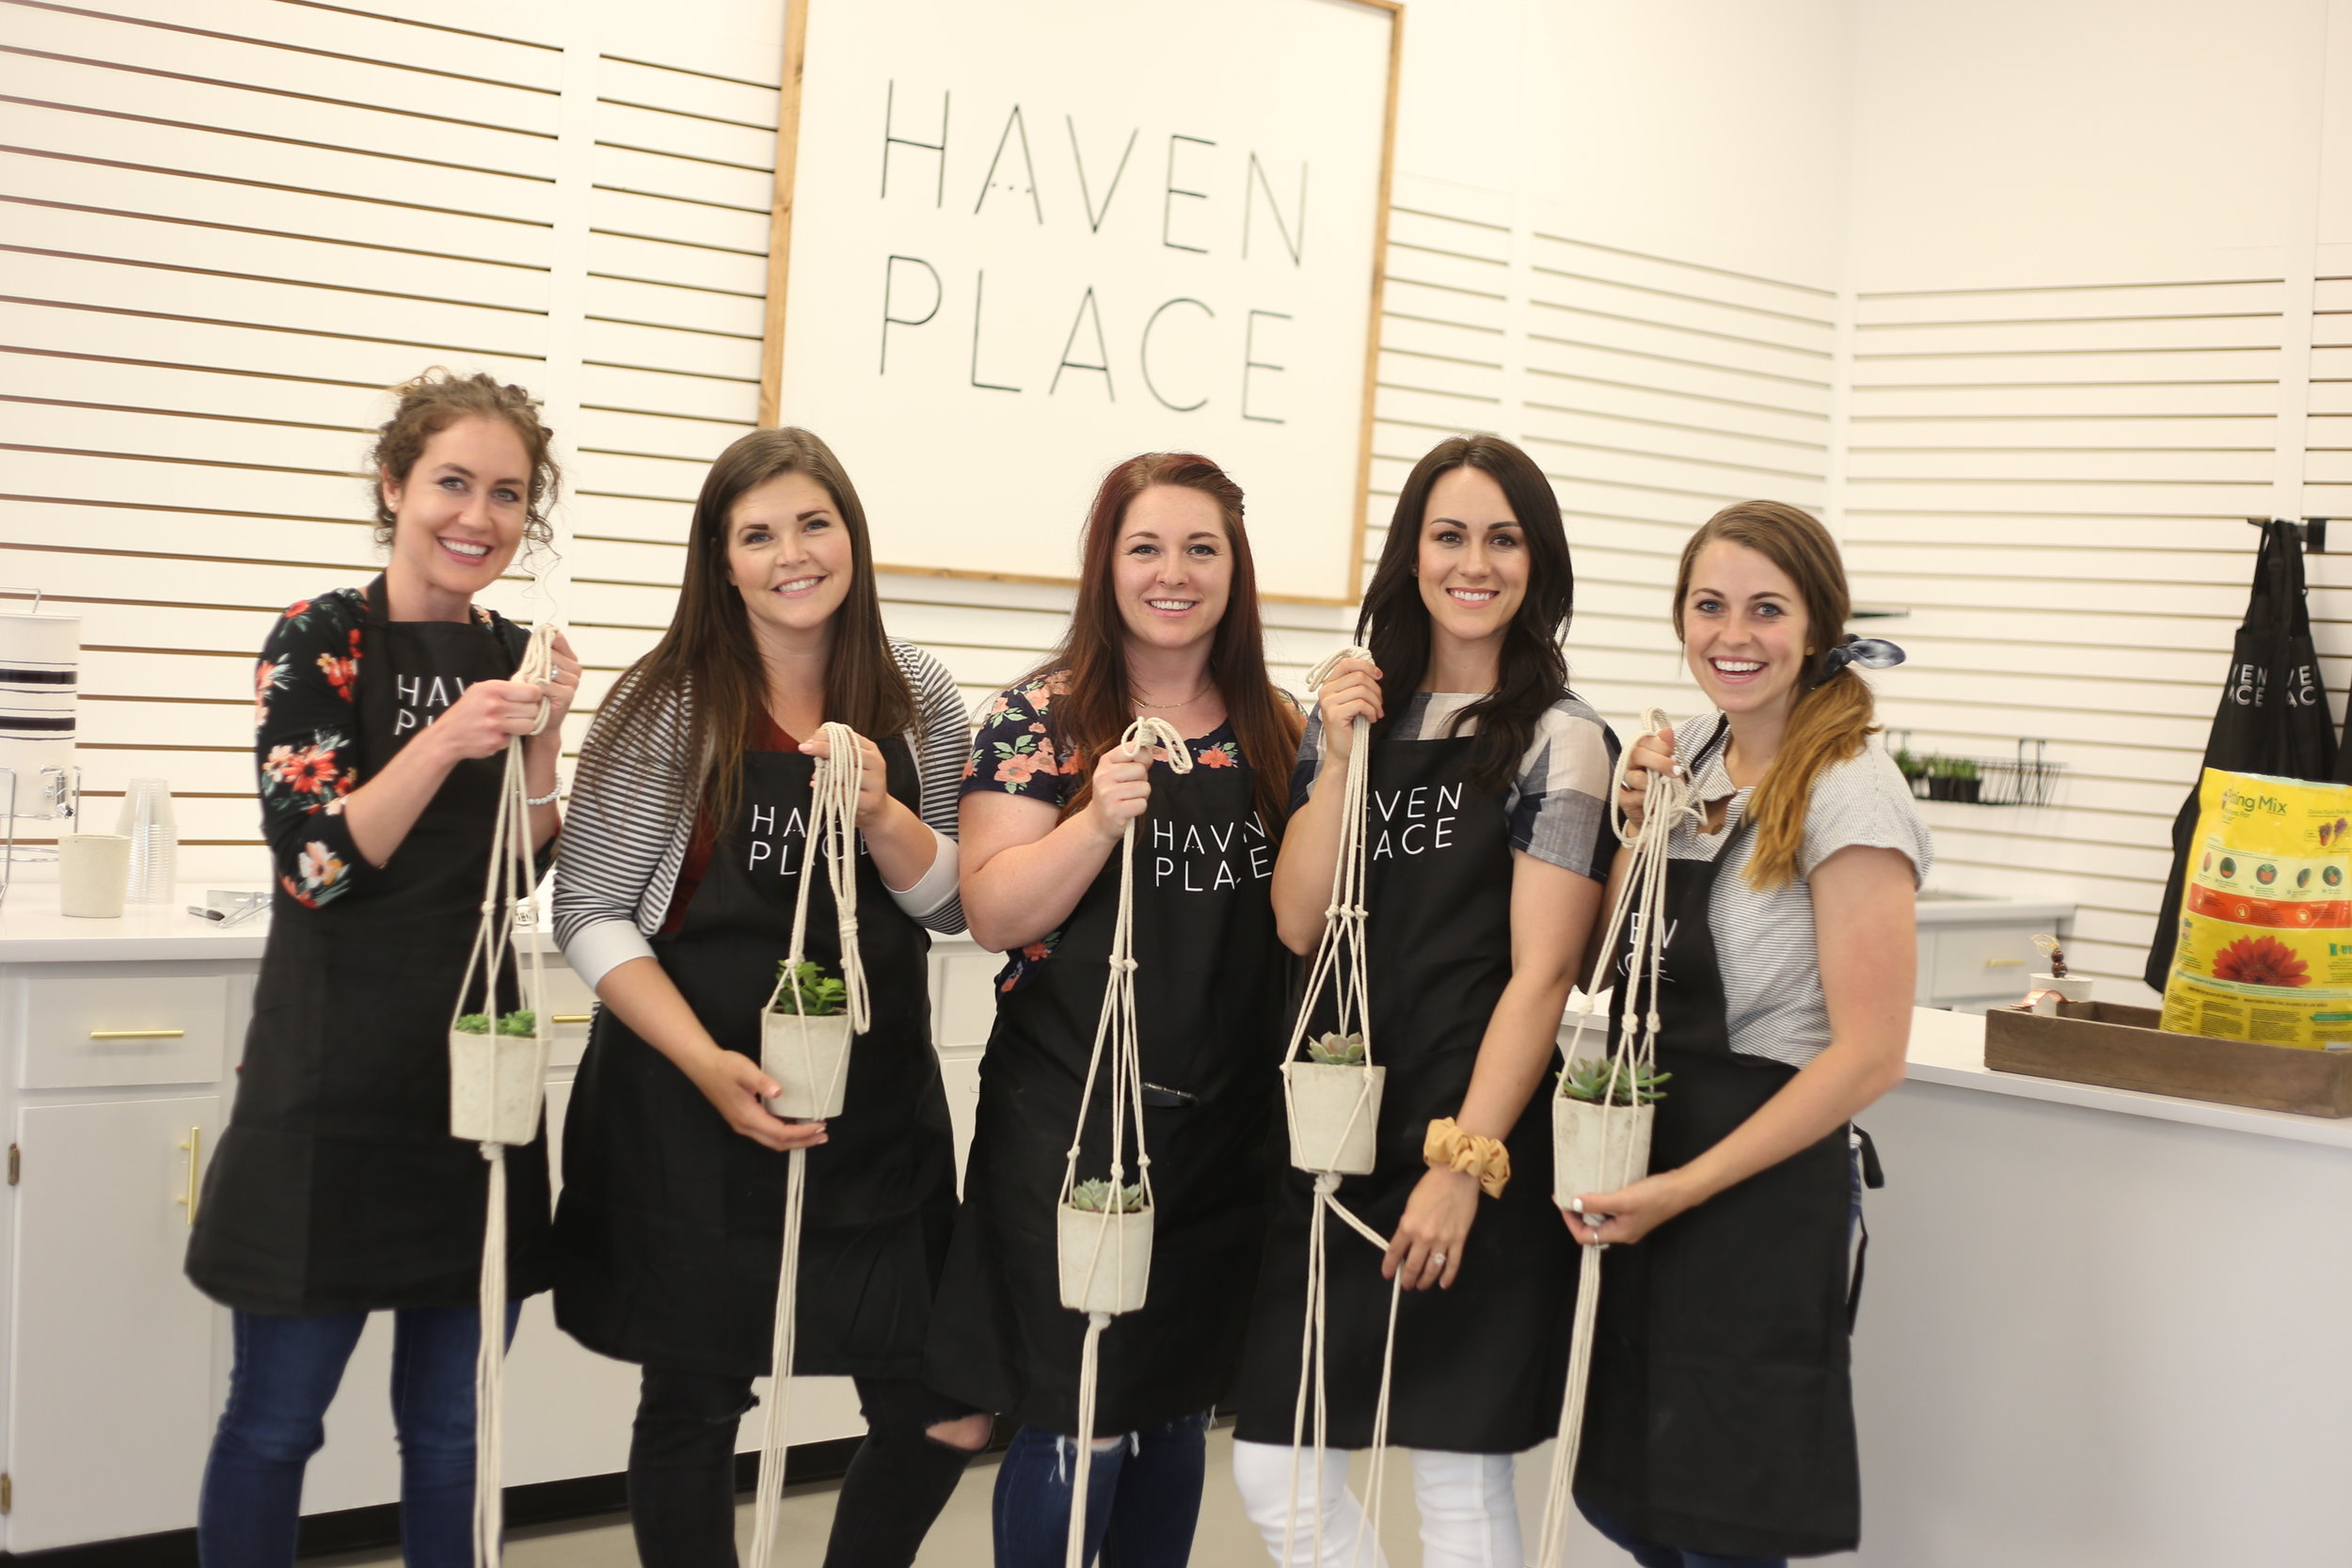 Haven Place 2019-05-28 046.JPG